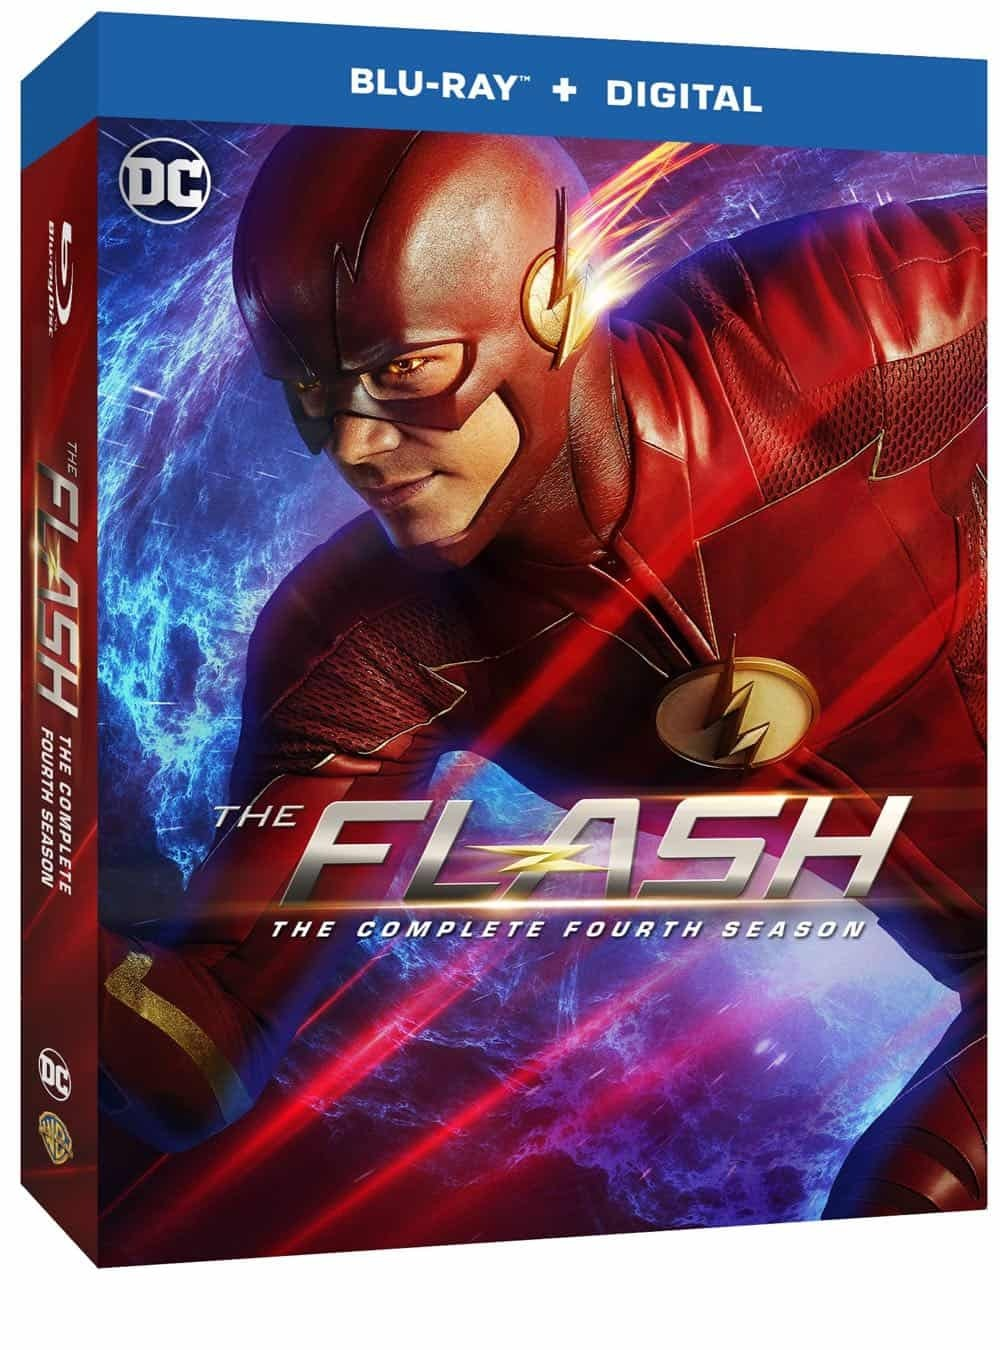 The Flash: The Complete Fourth Season (TV) (2017) Blu-ray